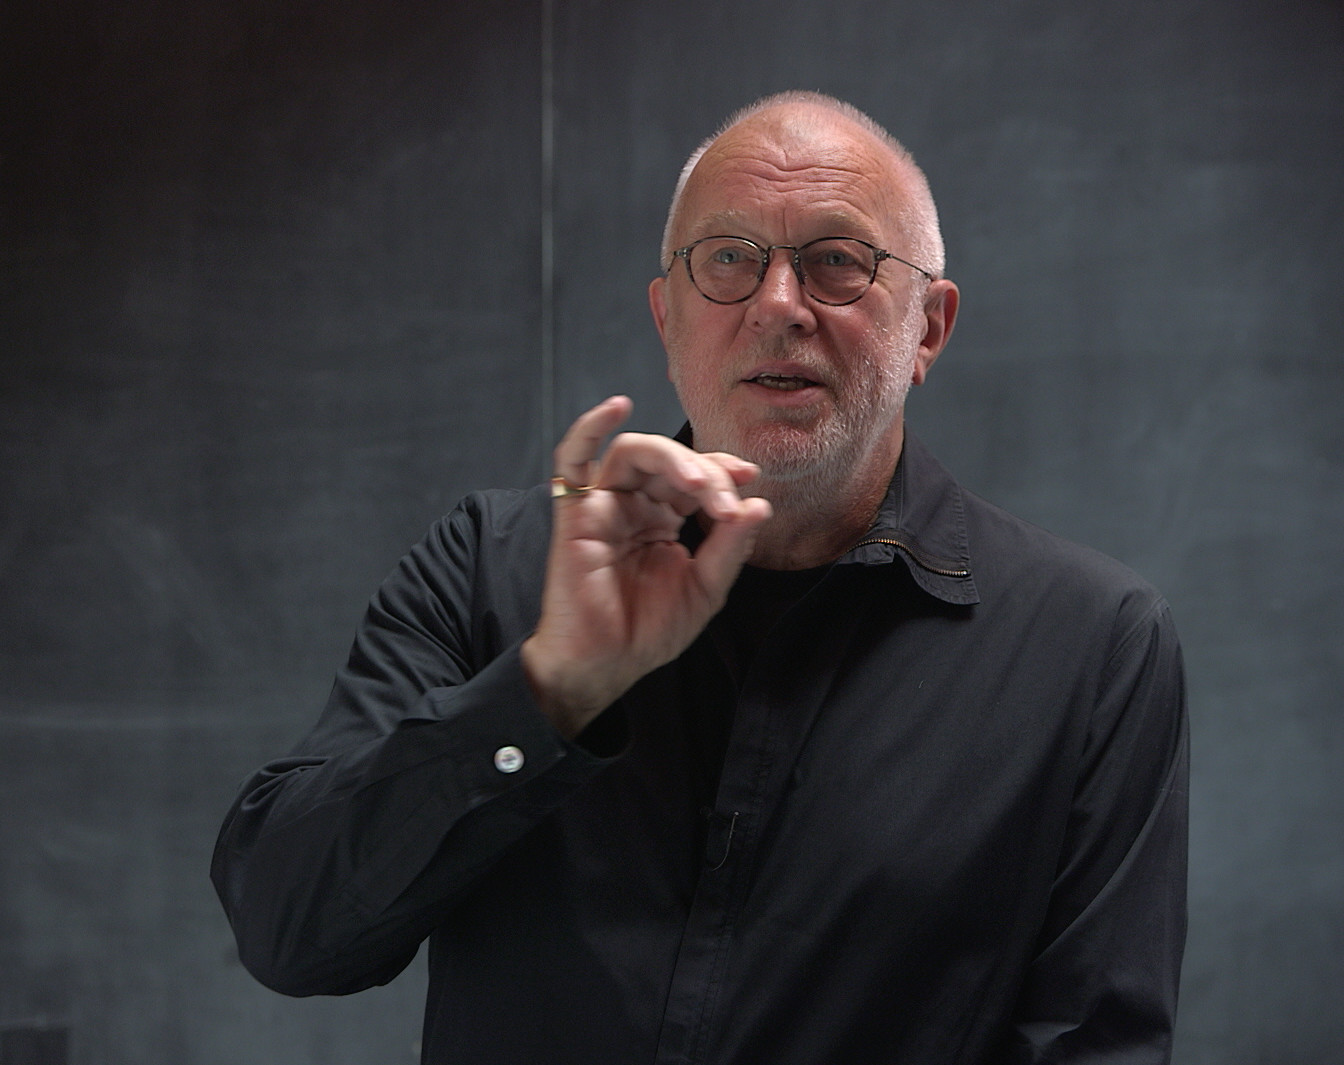 K. Michael Hays, Eliot Noyes Professor of Architectural Theory, associate dean for Academic Affairs, and interim chair of the Department of Architecture